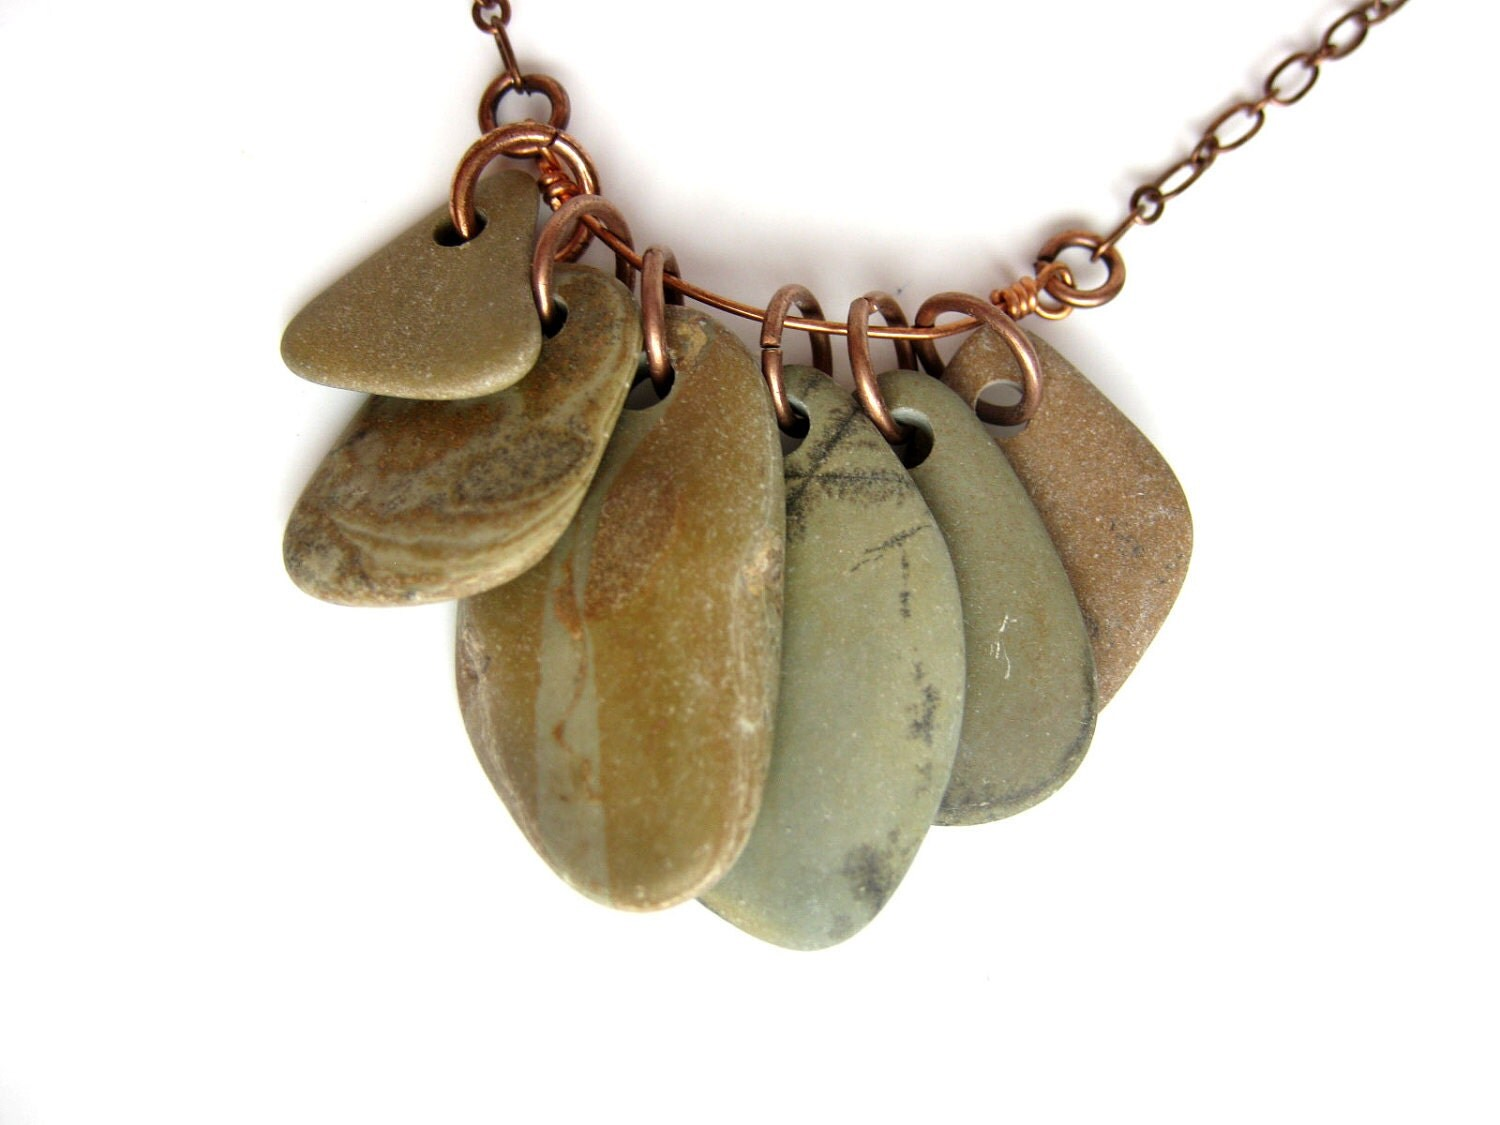 River rock necklace - faux bois - Basswood Rock Collection Necklace - 718 - AuthenticStone